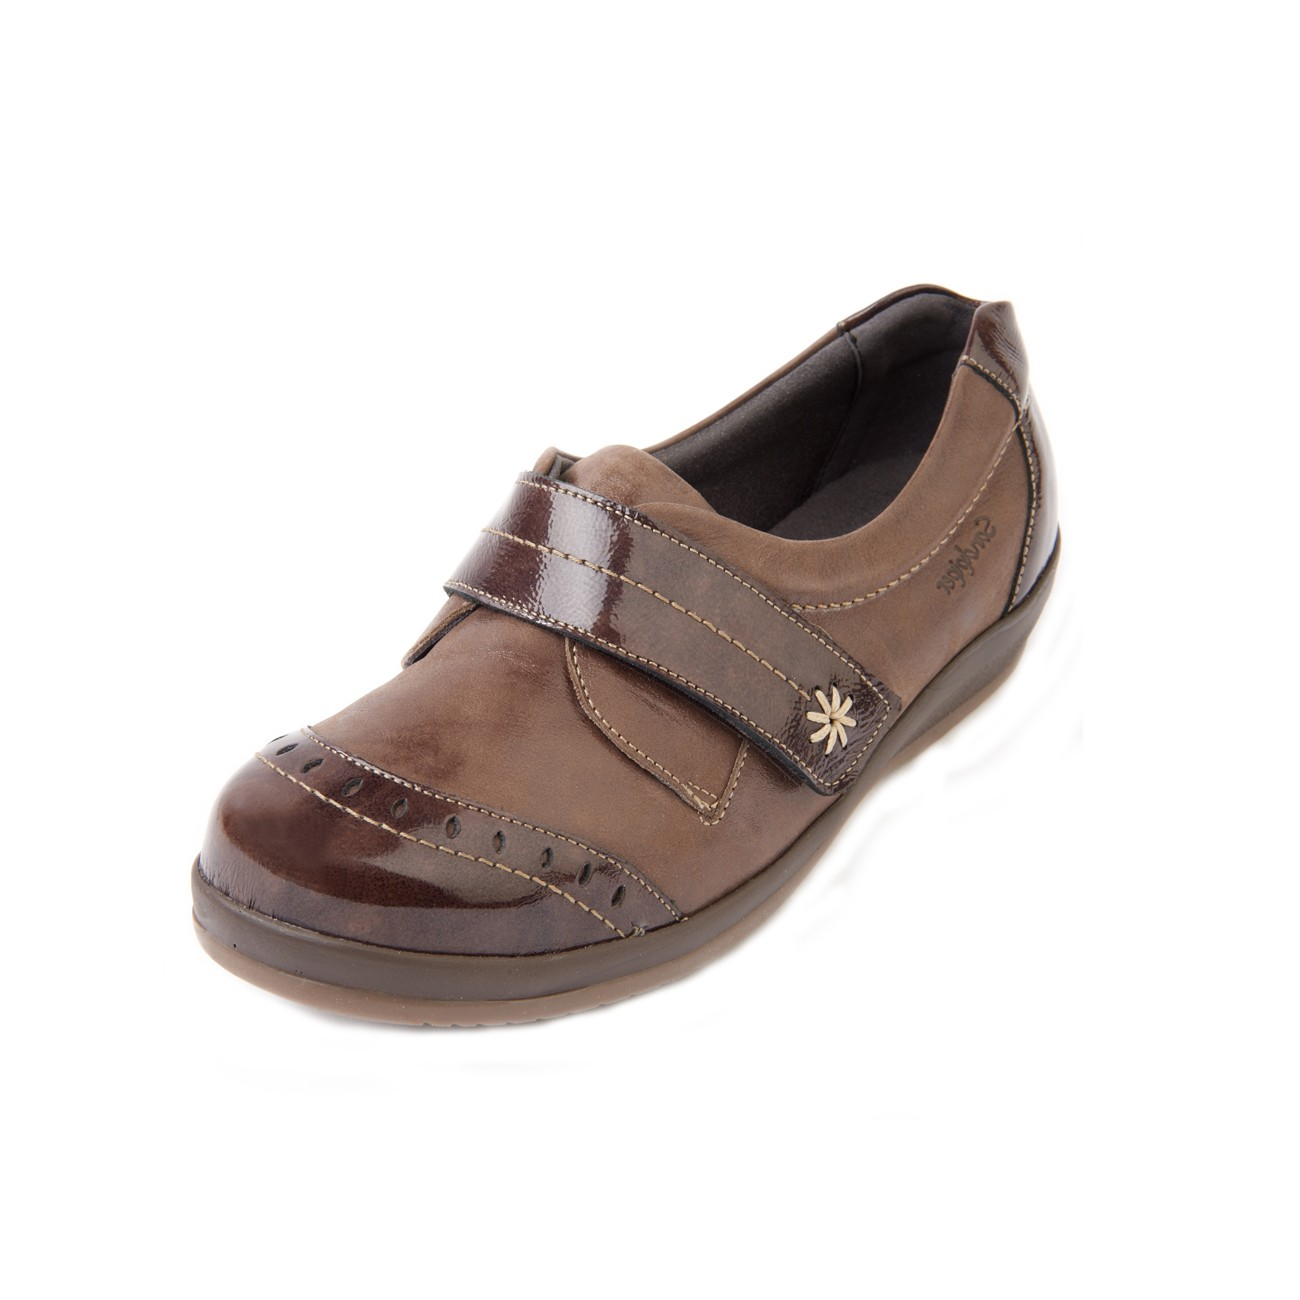 Fenwick Roomy Shoe and ladie's wider fitting footwear